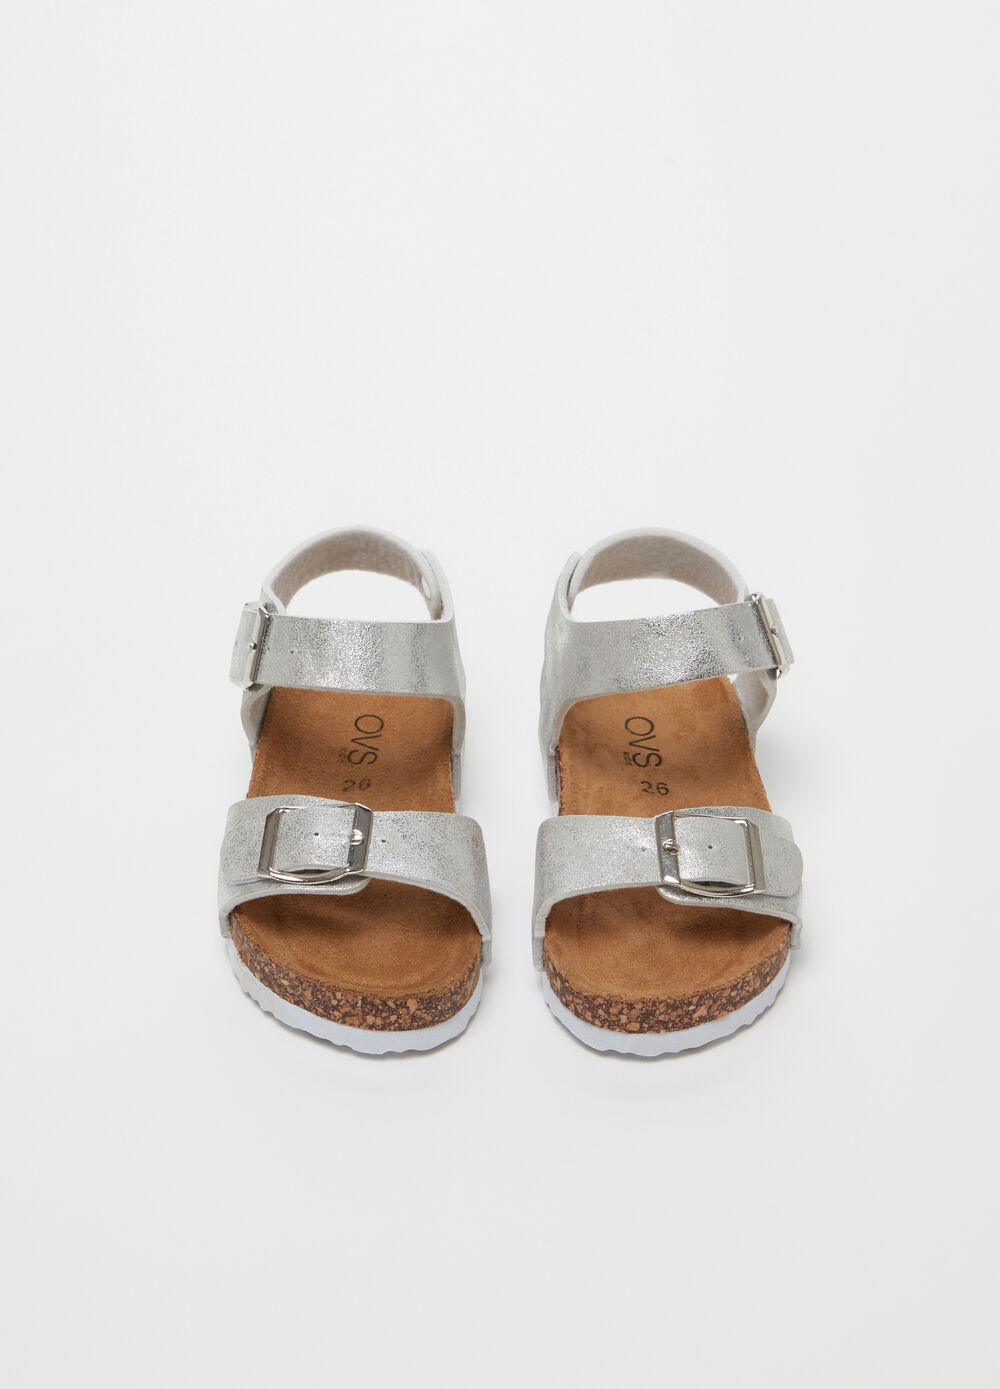 Sandals with shiny-effect straps and buckle